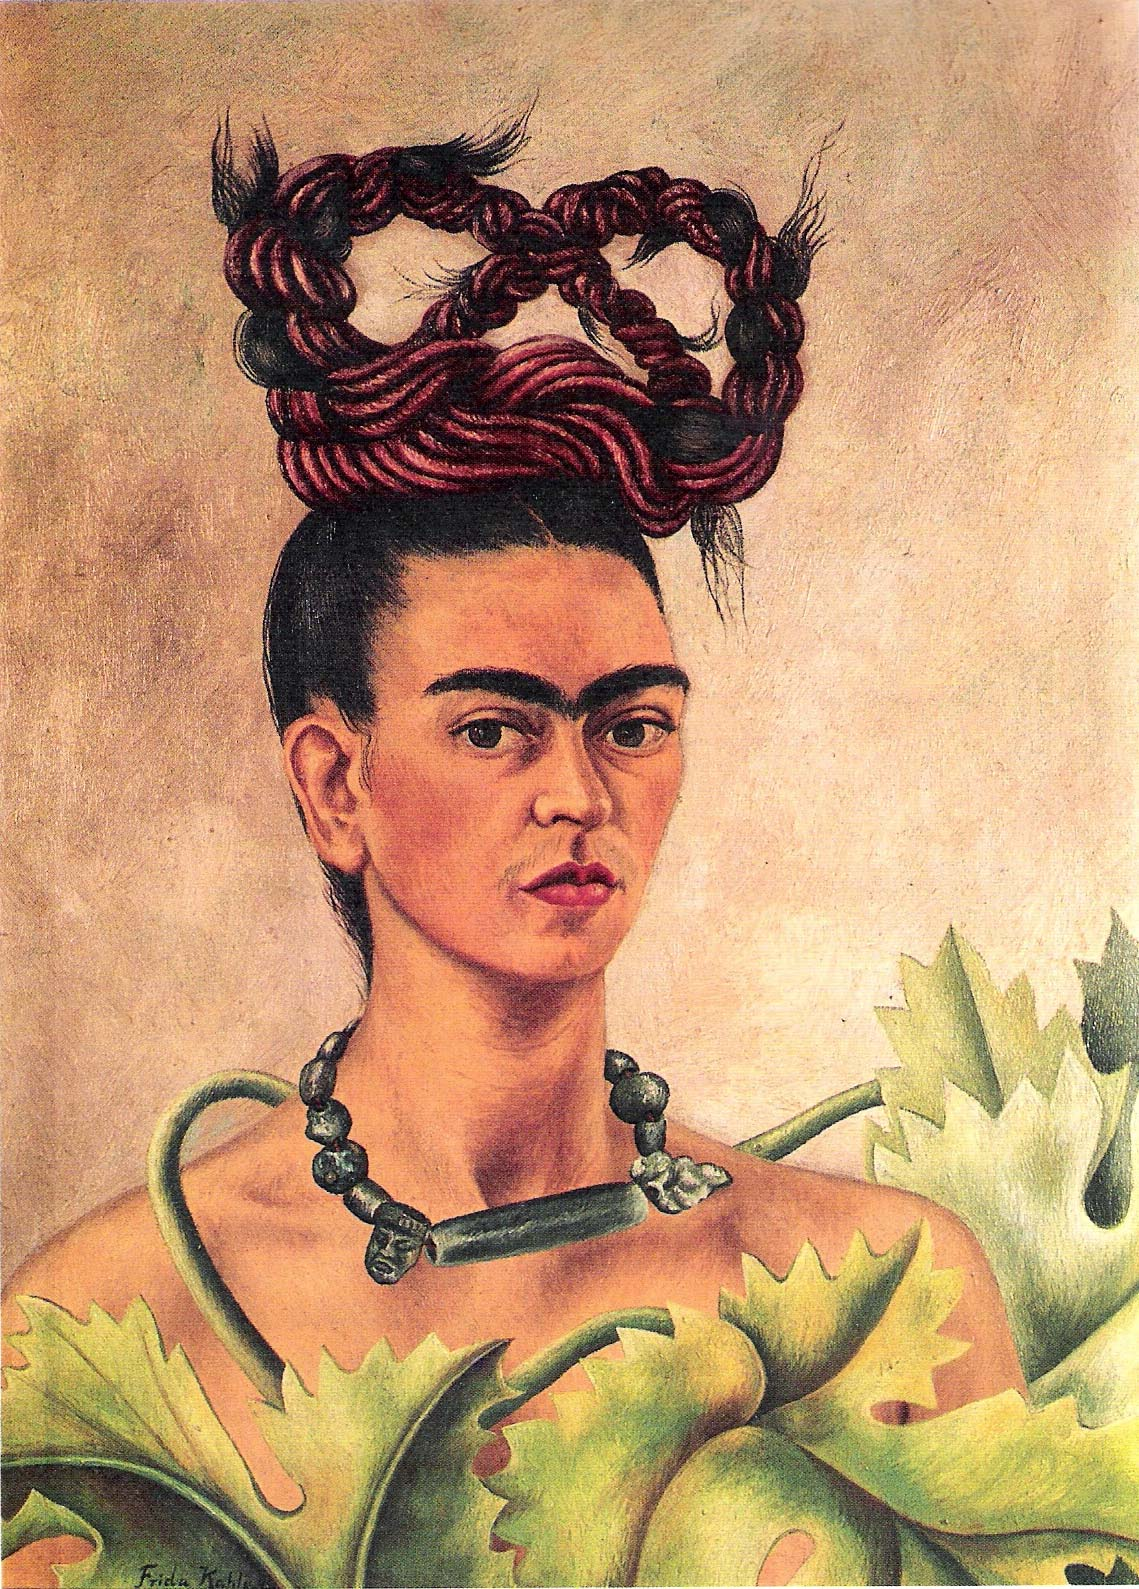 art and creative frida kahlo my inspirational woman always. Black Bedroom Furniture Sets. Home Design Ideas